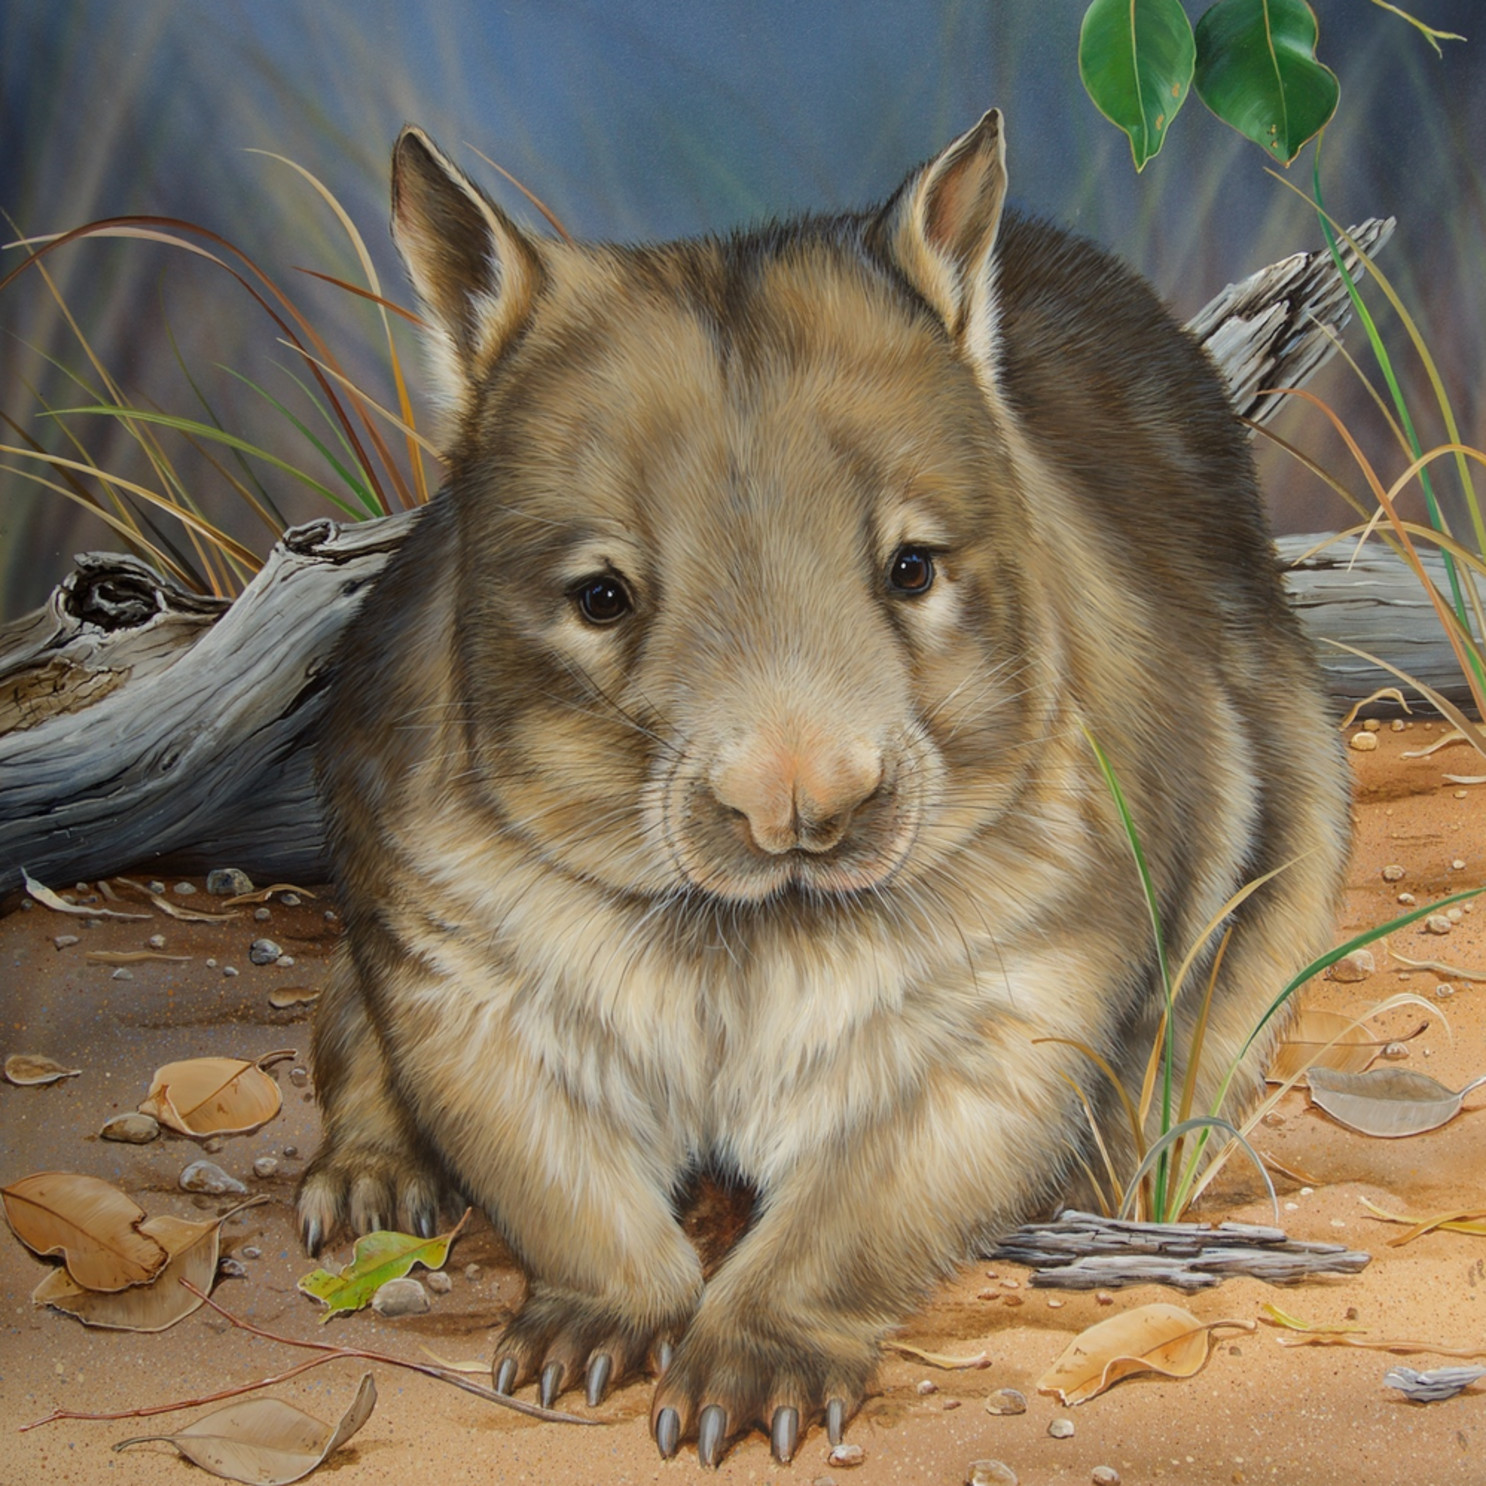 Moon light stroll northern hairy nosed wombat natalie jane parker april 2016 ehucwl